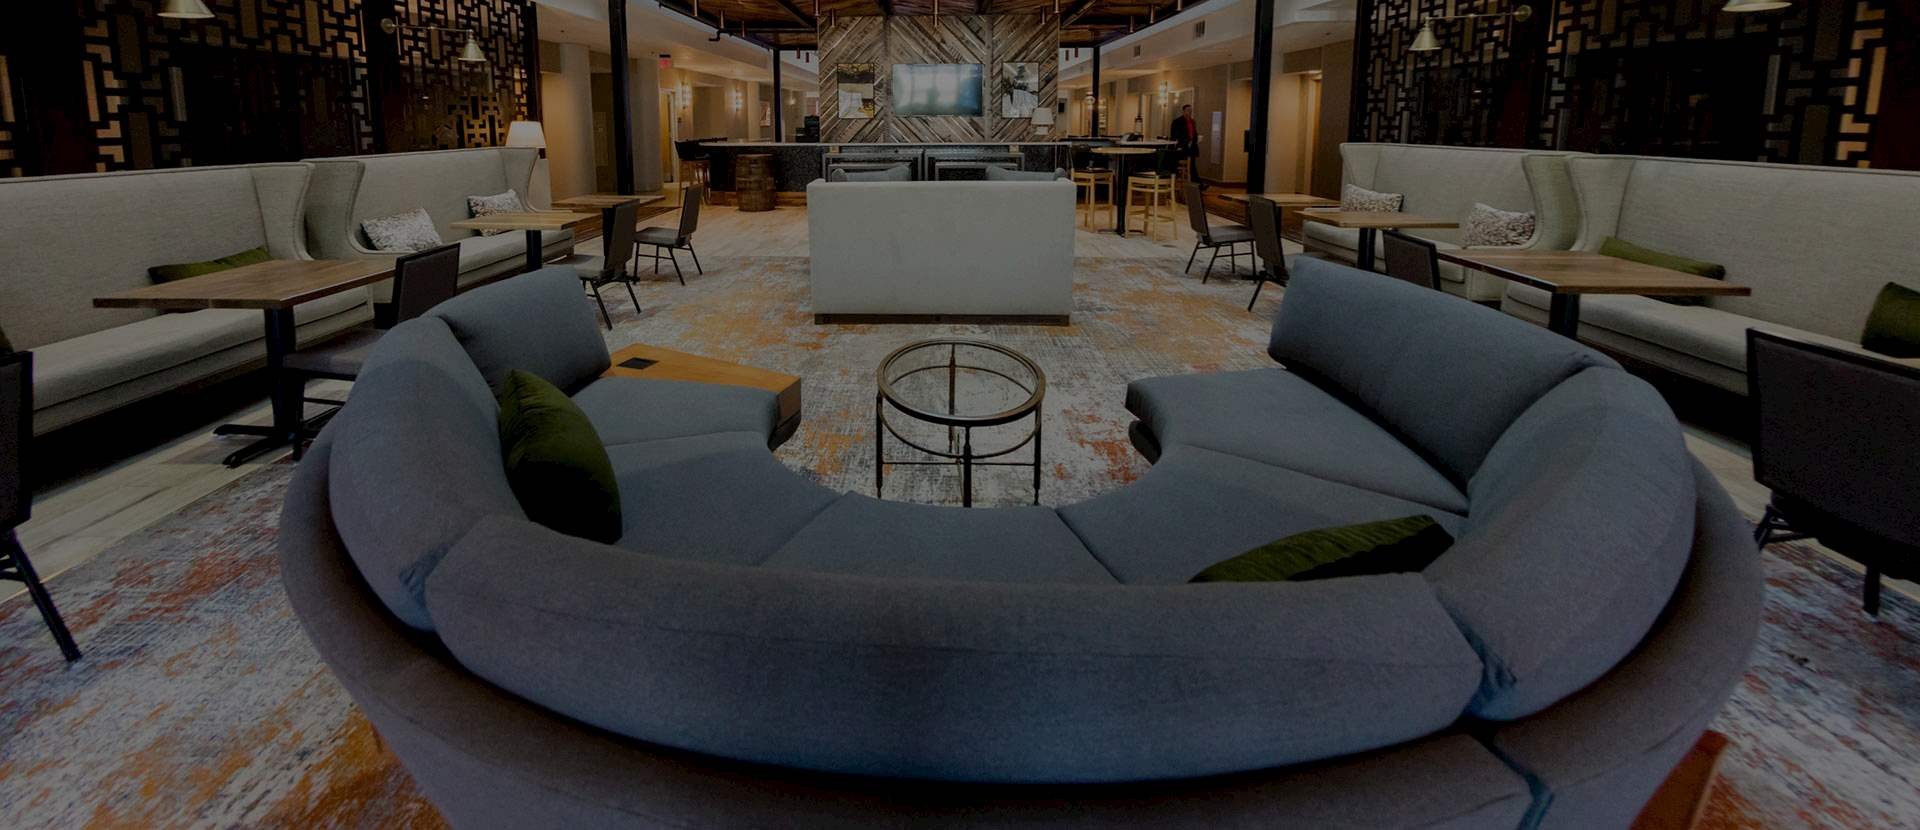 Quorum Hotels & Resorts, Dallas